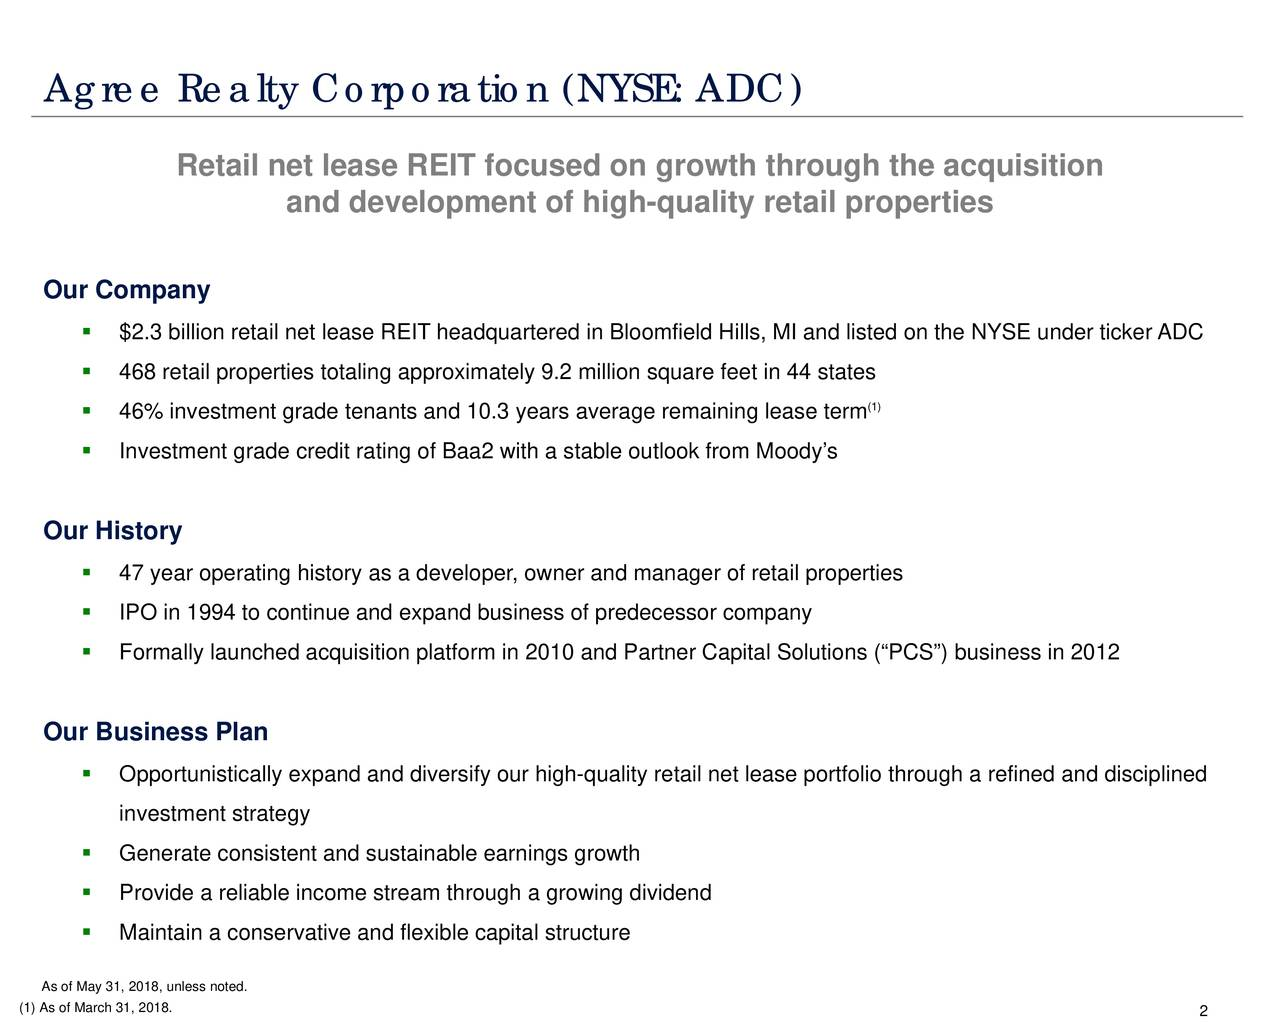 """Retail net lease REIT focused on growth through the acquisition and development of high-quality retail properties Our Company  $2.3 billion retail net lease REIT headquartered in Bloomfield Hills, MI and listed on the NYSE under ticker ADC  468 retail properties totaling approximately 9.2 million square feet in 44 states (1)  46% investment grade tenants and 10.3 years average remaining lease term  Investment grade credit rating of Baa2 with a stable outlook from Moody's Our History  47 year operating history as a developer, owner and manager of retail properties  IPO in 1994 to continue and expand business of predecessor company  Formally launched acquisition platform in 2010 and Partner Capital Solutions (""""PCS"""") business in 2012 Our Business Plan  Opportunistically expand and diversify our high-quality retail net lease portfolio through a refined and disciplined investment strategy  Generate consistent and sustainable earnings growth  Provide a reliable income stream through a growing dividend  Maintain a conservative and flexible capital structure As of May 31, 2018, unless noted. (1) As of March 31, 2018. 2"""